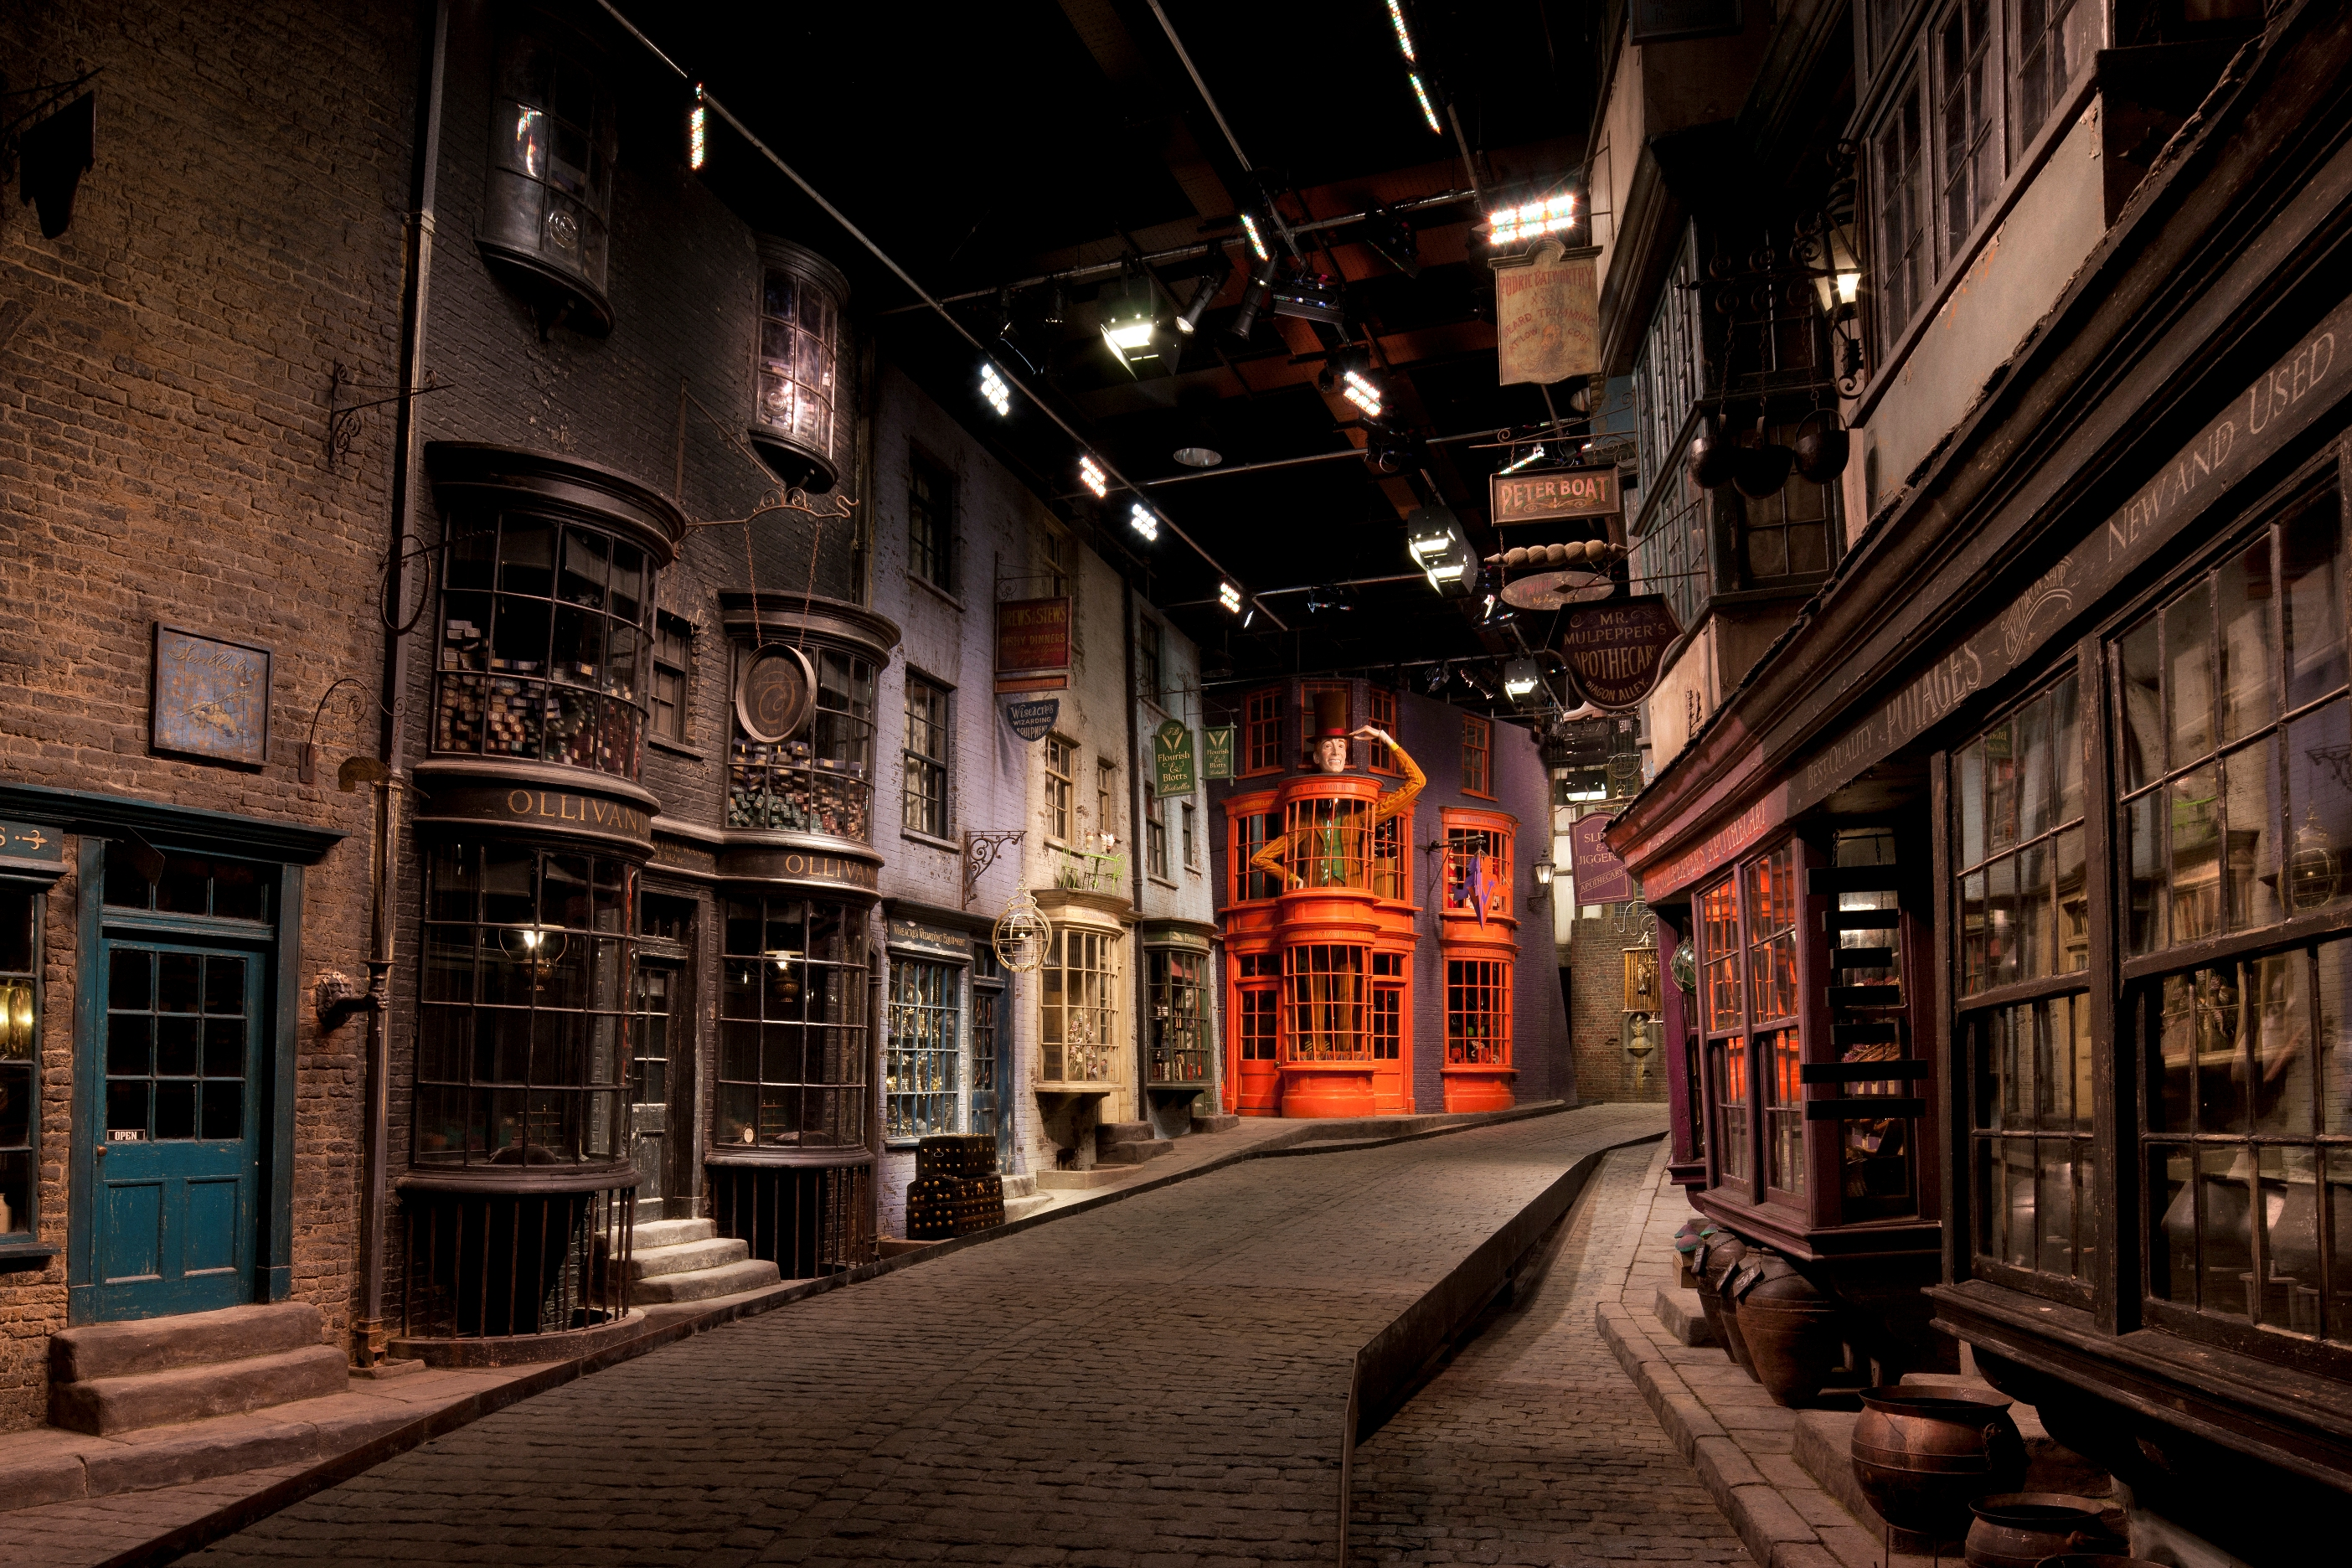 Harry Potter Studio Tour at Leavesdon